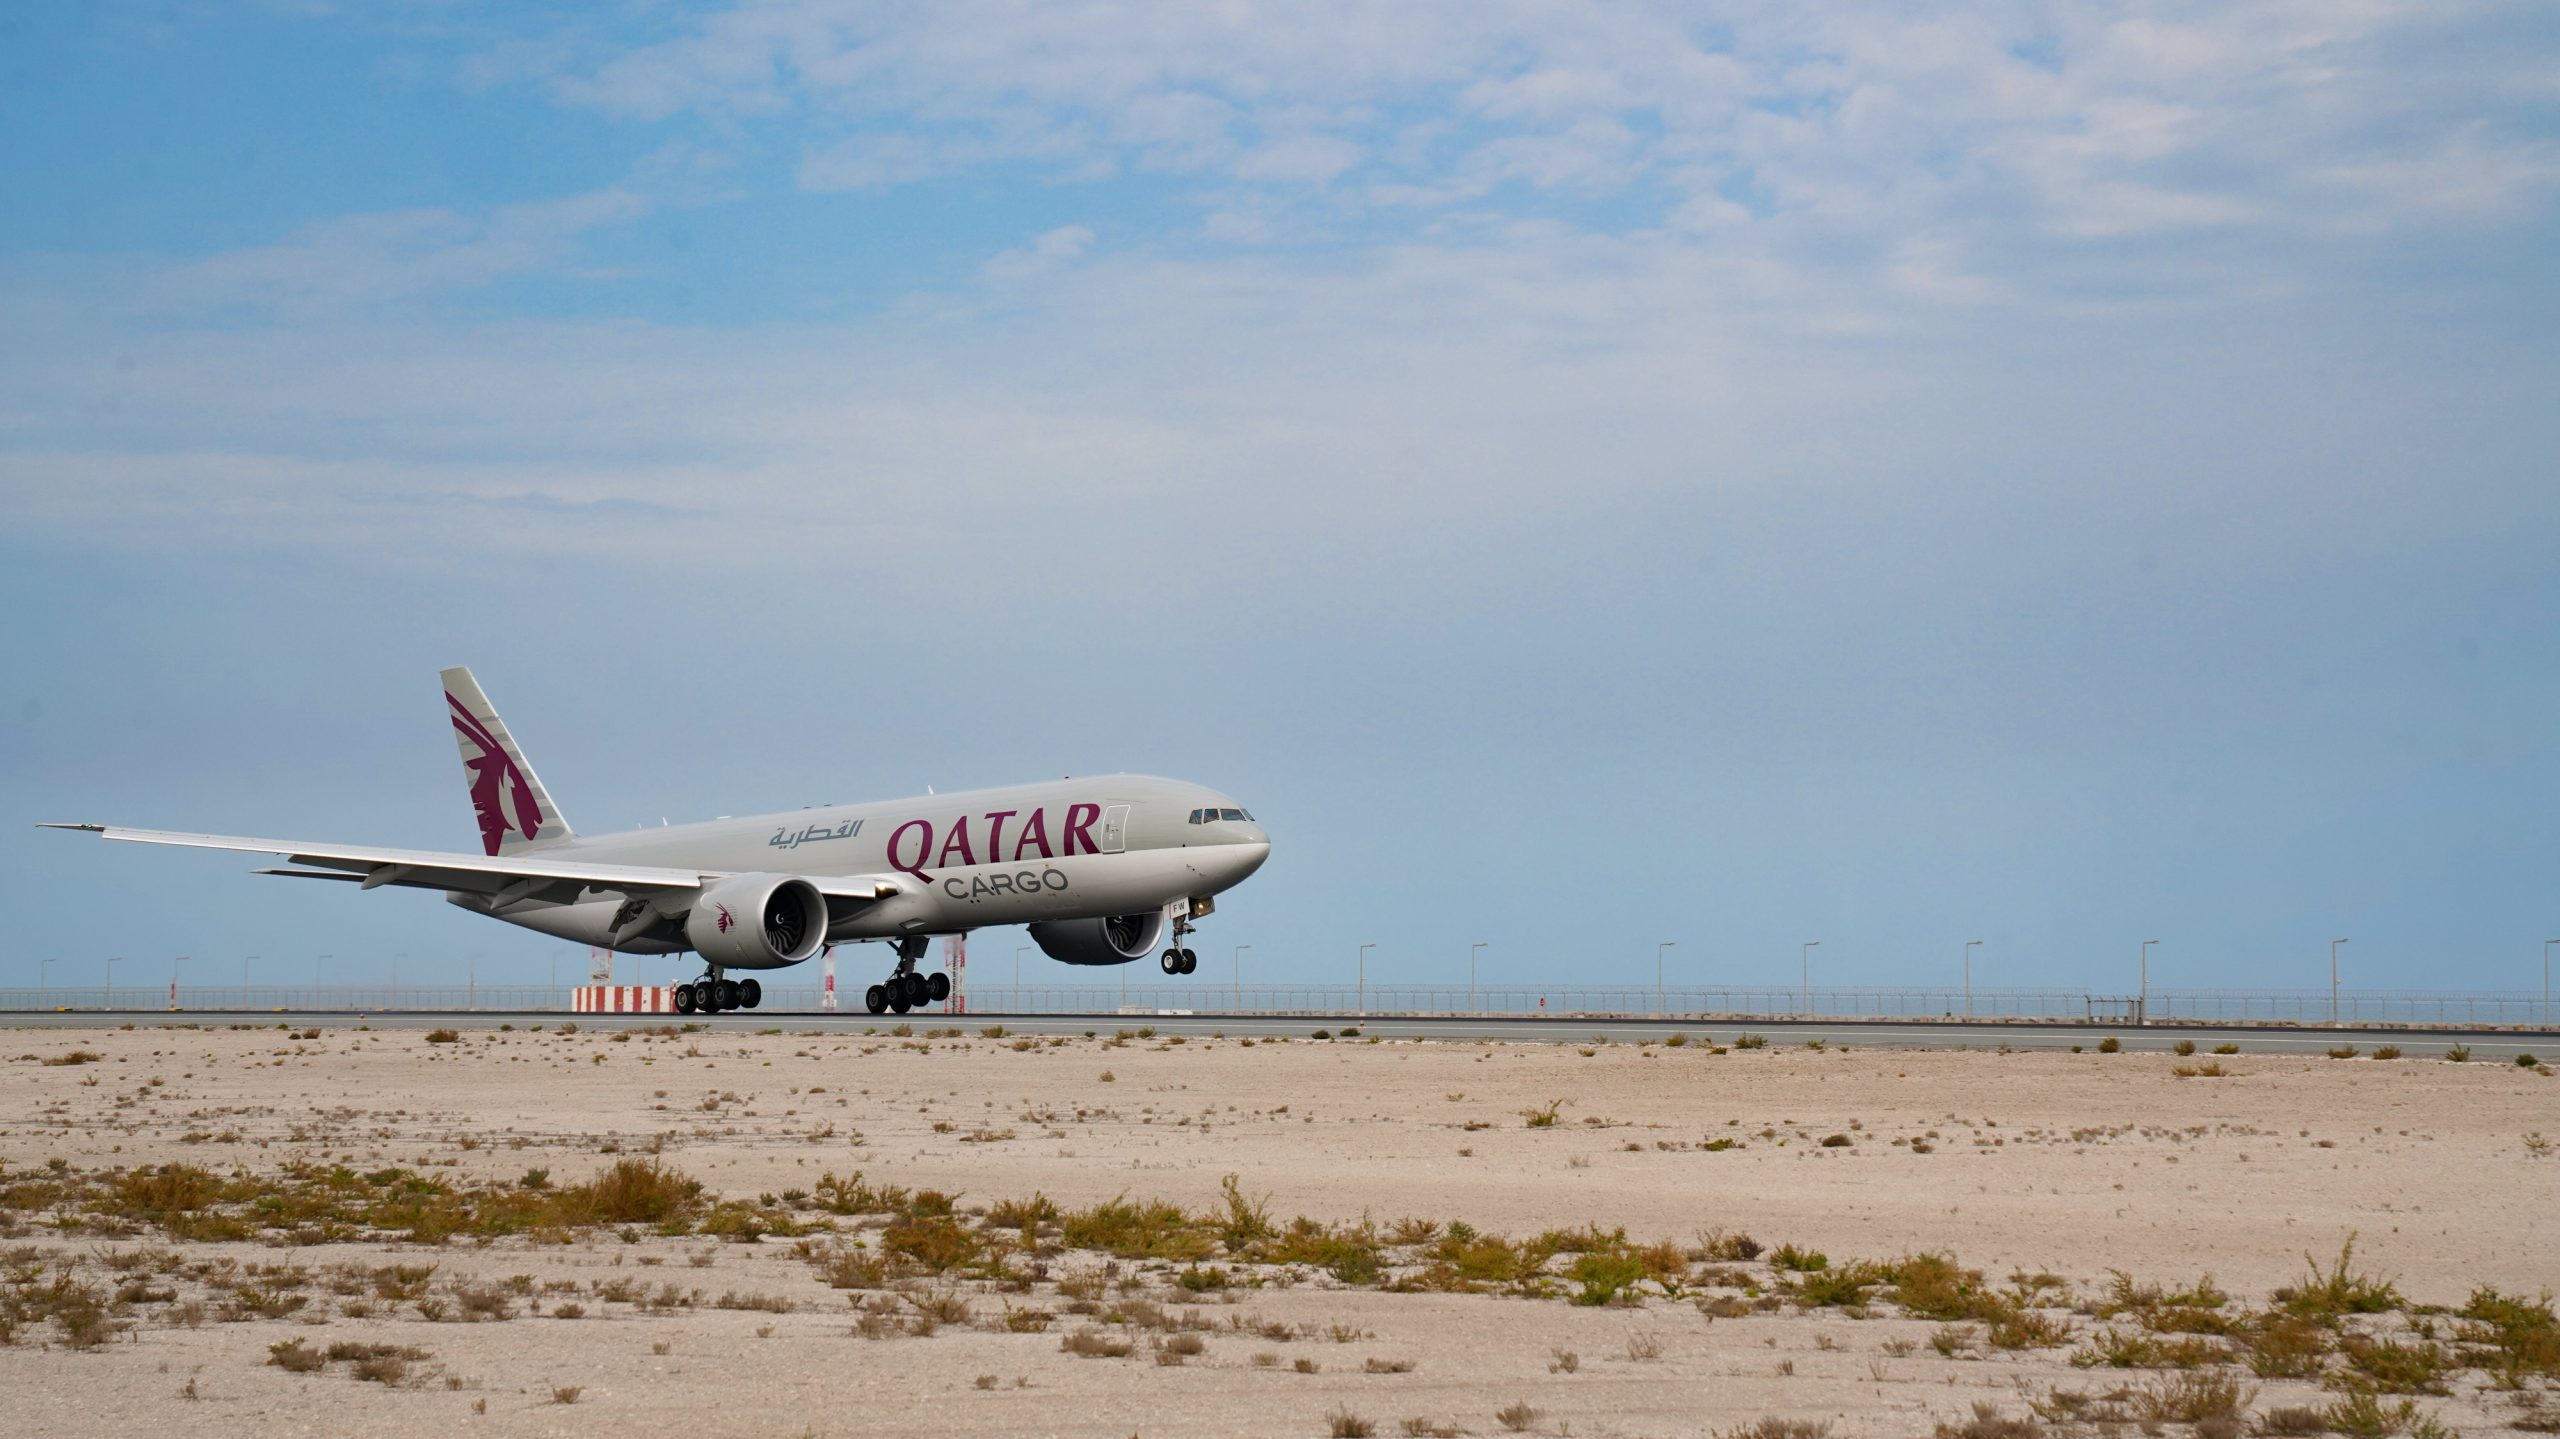 Egypt announces opening of air border with Qatar